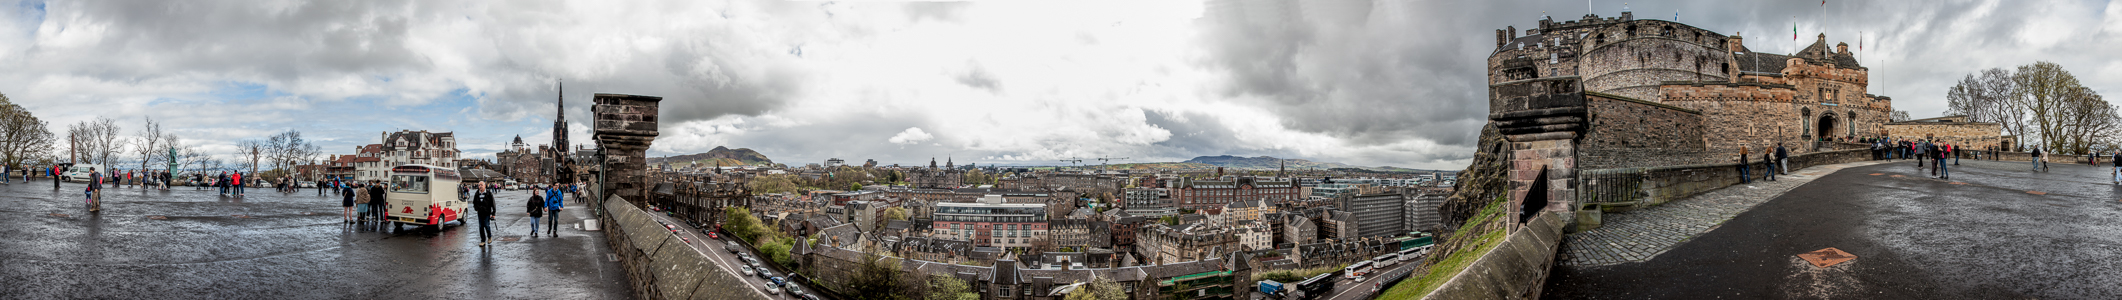 V.l.: Castle Esplanade, Old Town, Holyrood Park, Lauriston, Edinburgh Castle